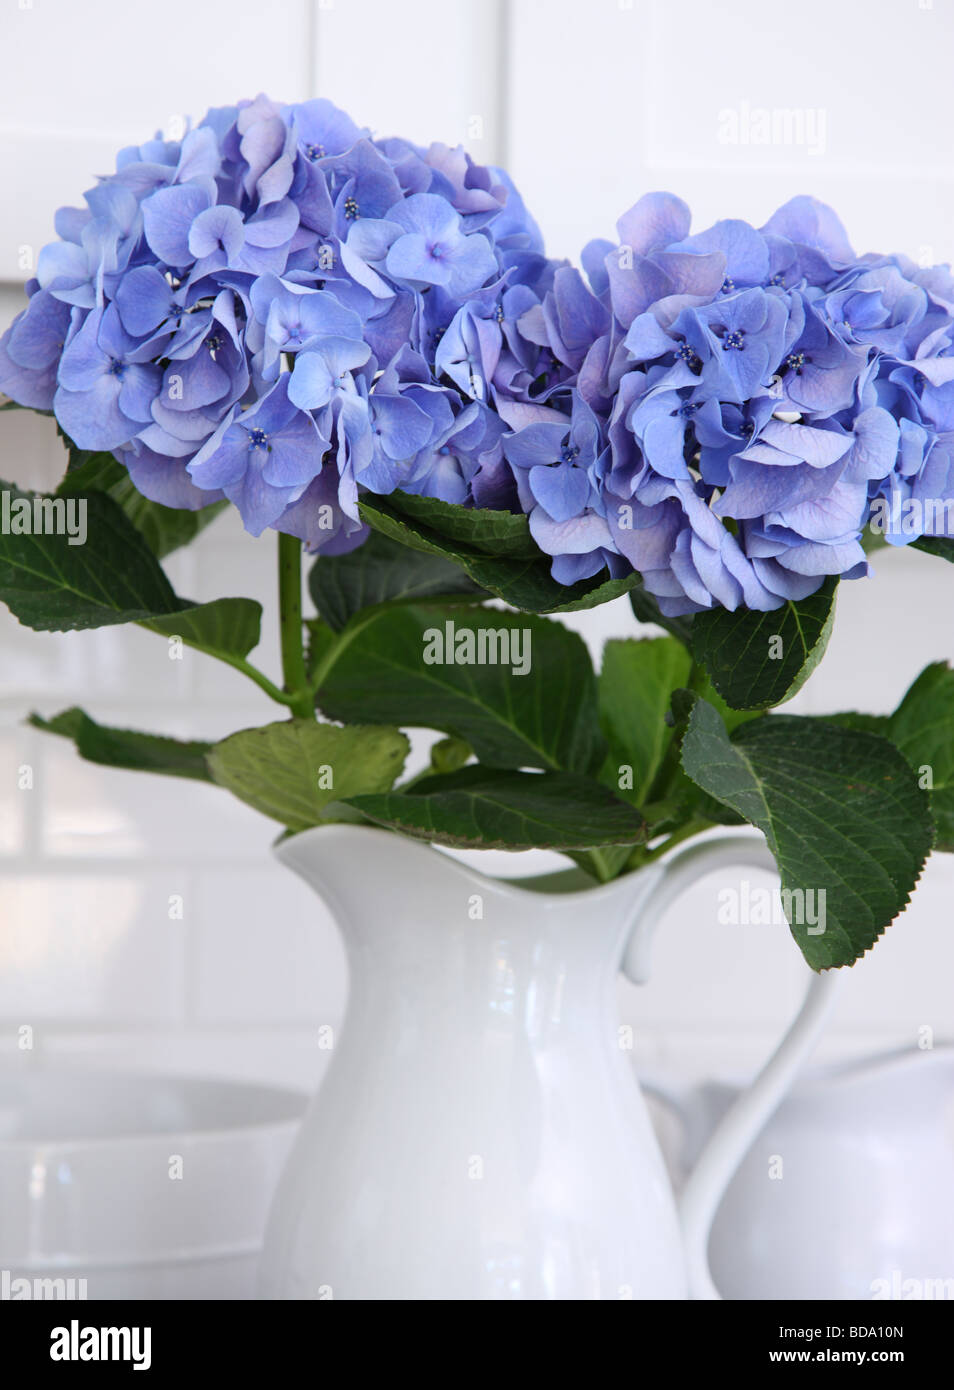 Hydrangea flowers in pitcher - Stock Image